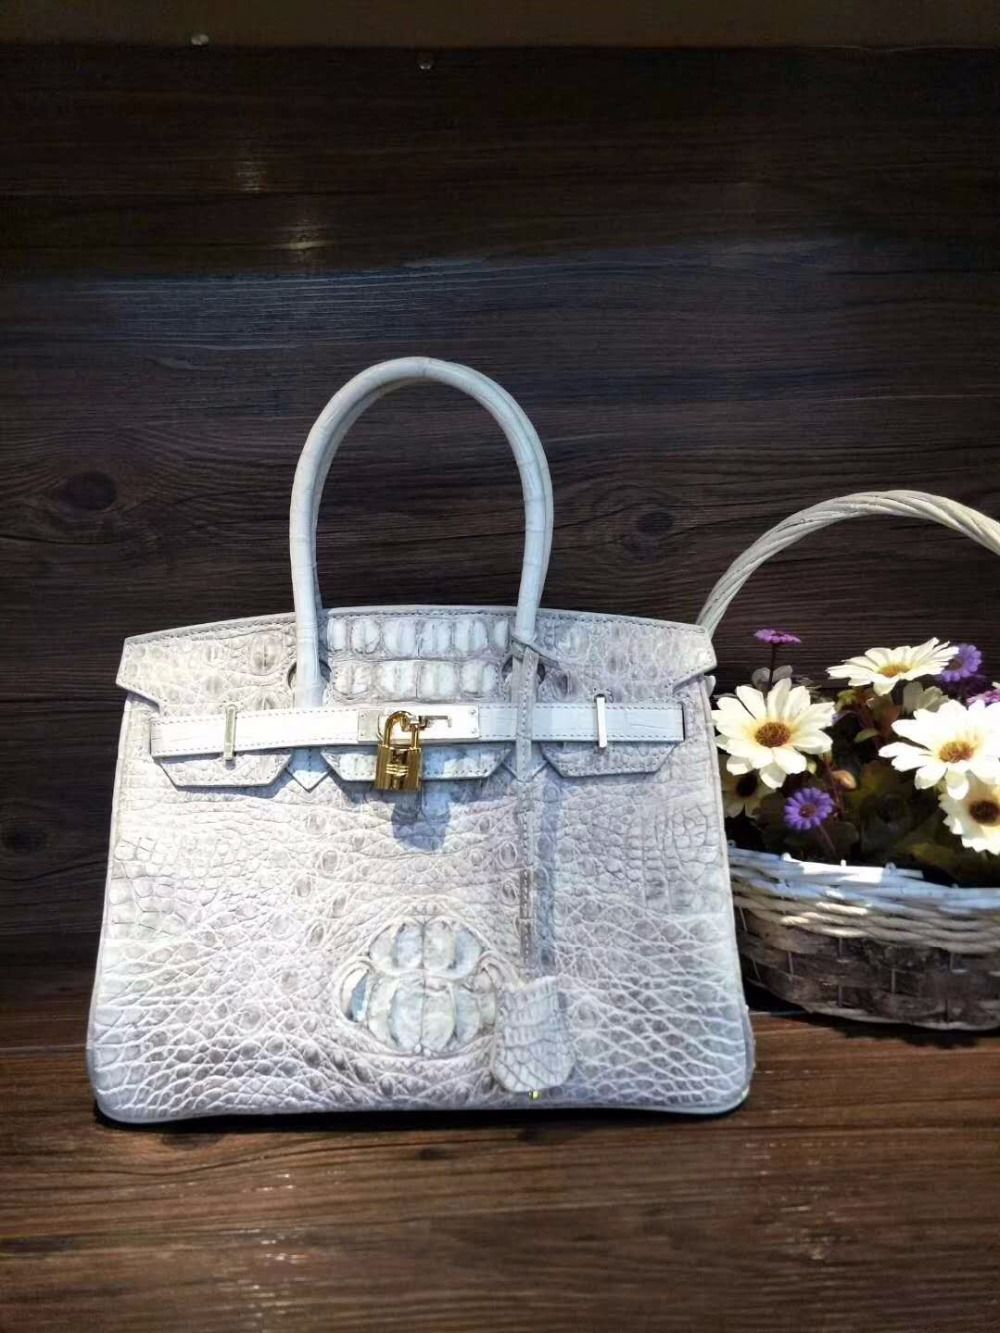 2018 fashion Himalaya white Crocodile head skin Leather Tote Top-handle women Handbag 100% Real/Genuine Crocodile Skin lady bag